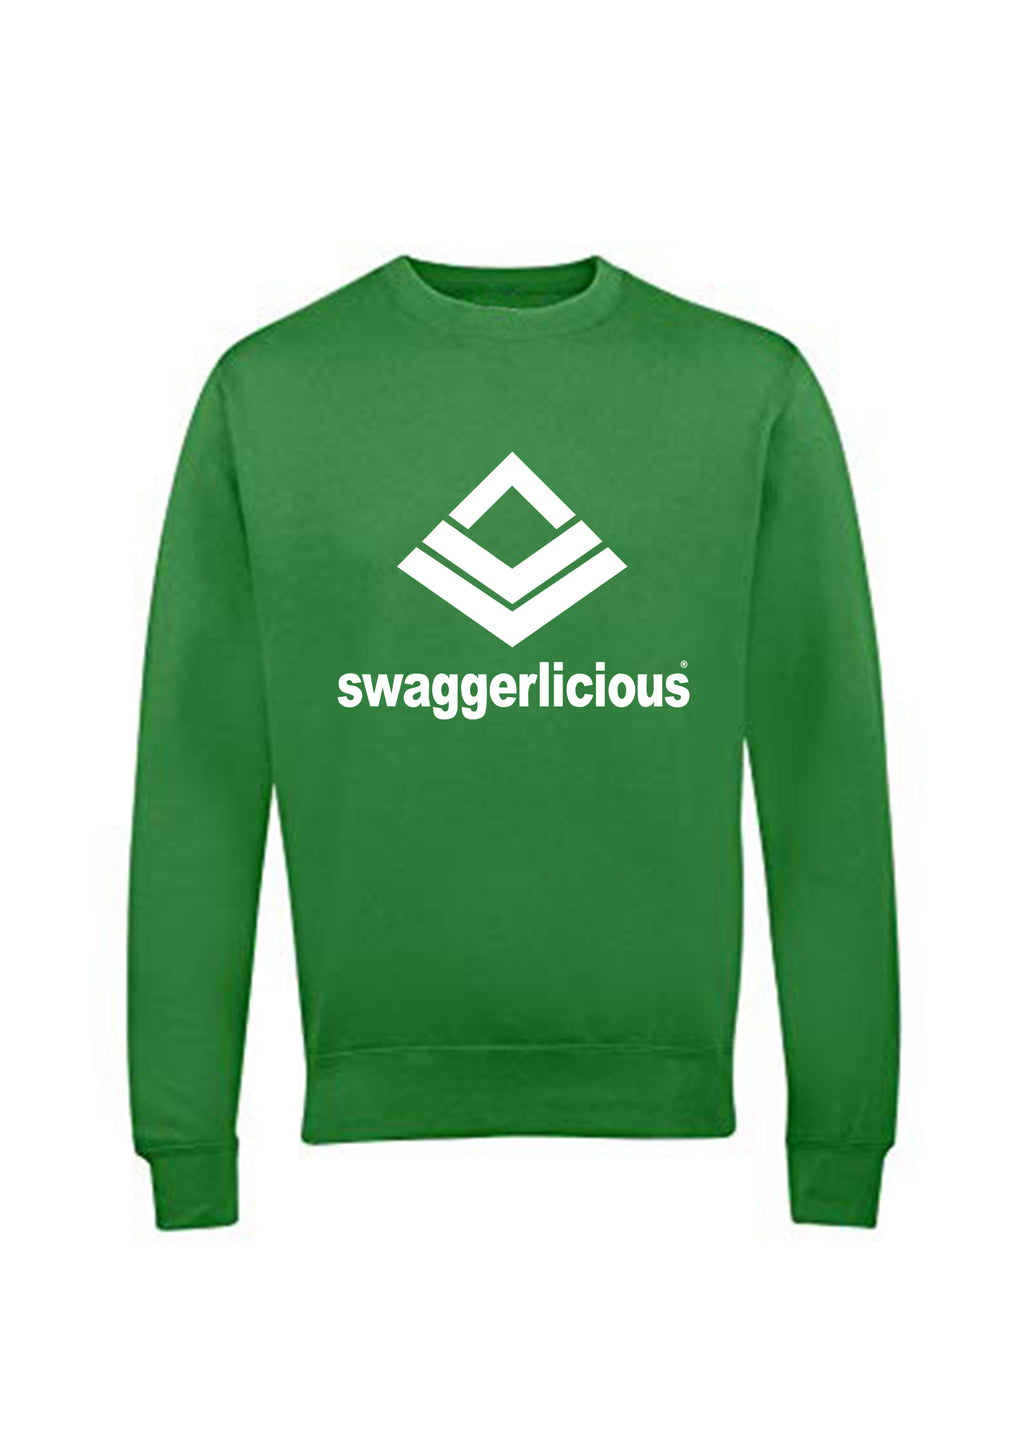 Swaggerlicious Classic Sports Green Sweatshirt - swaggerlicious-clothing.com